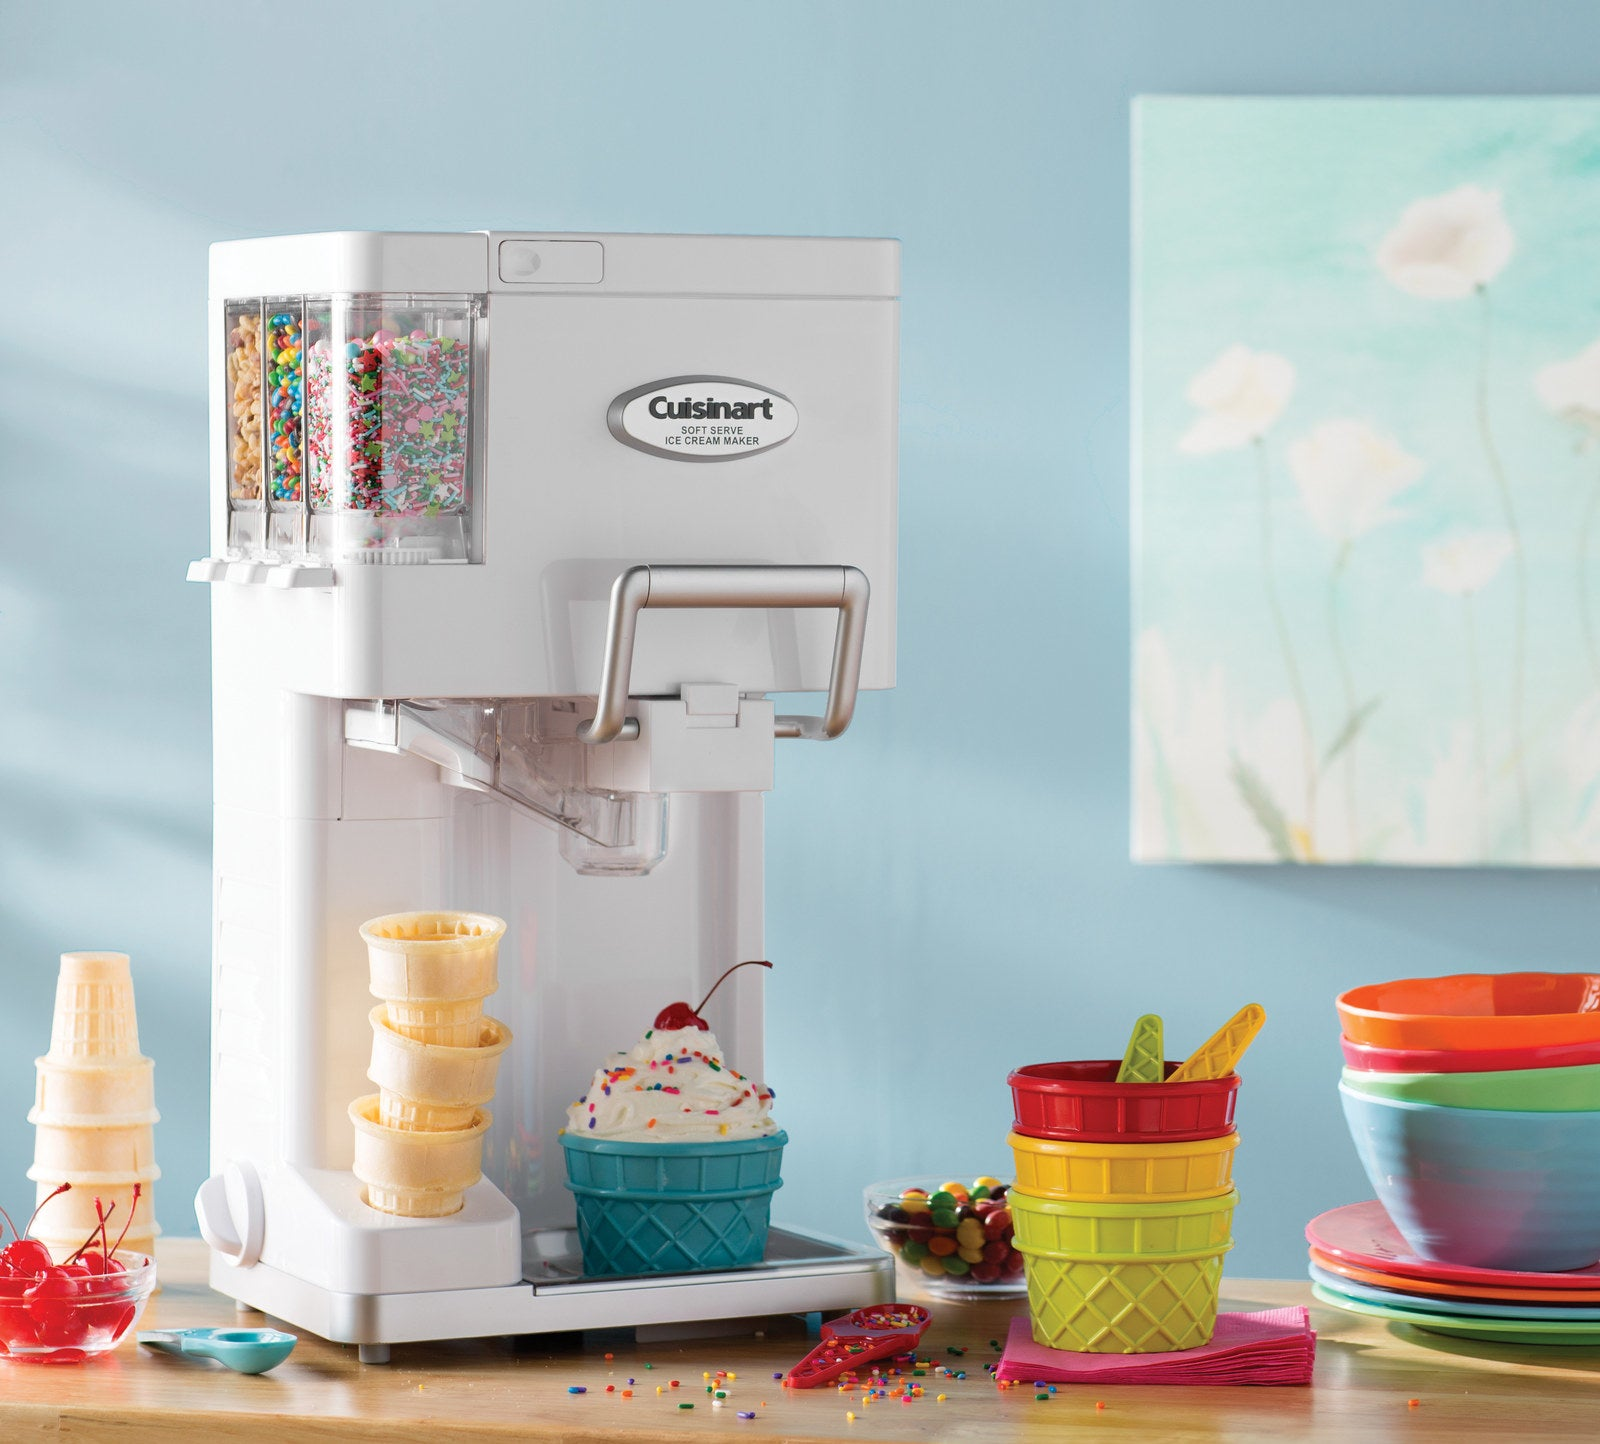 Get it from Wayfair for $90.85 or Amazon for $73.85.